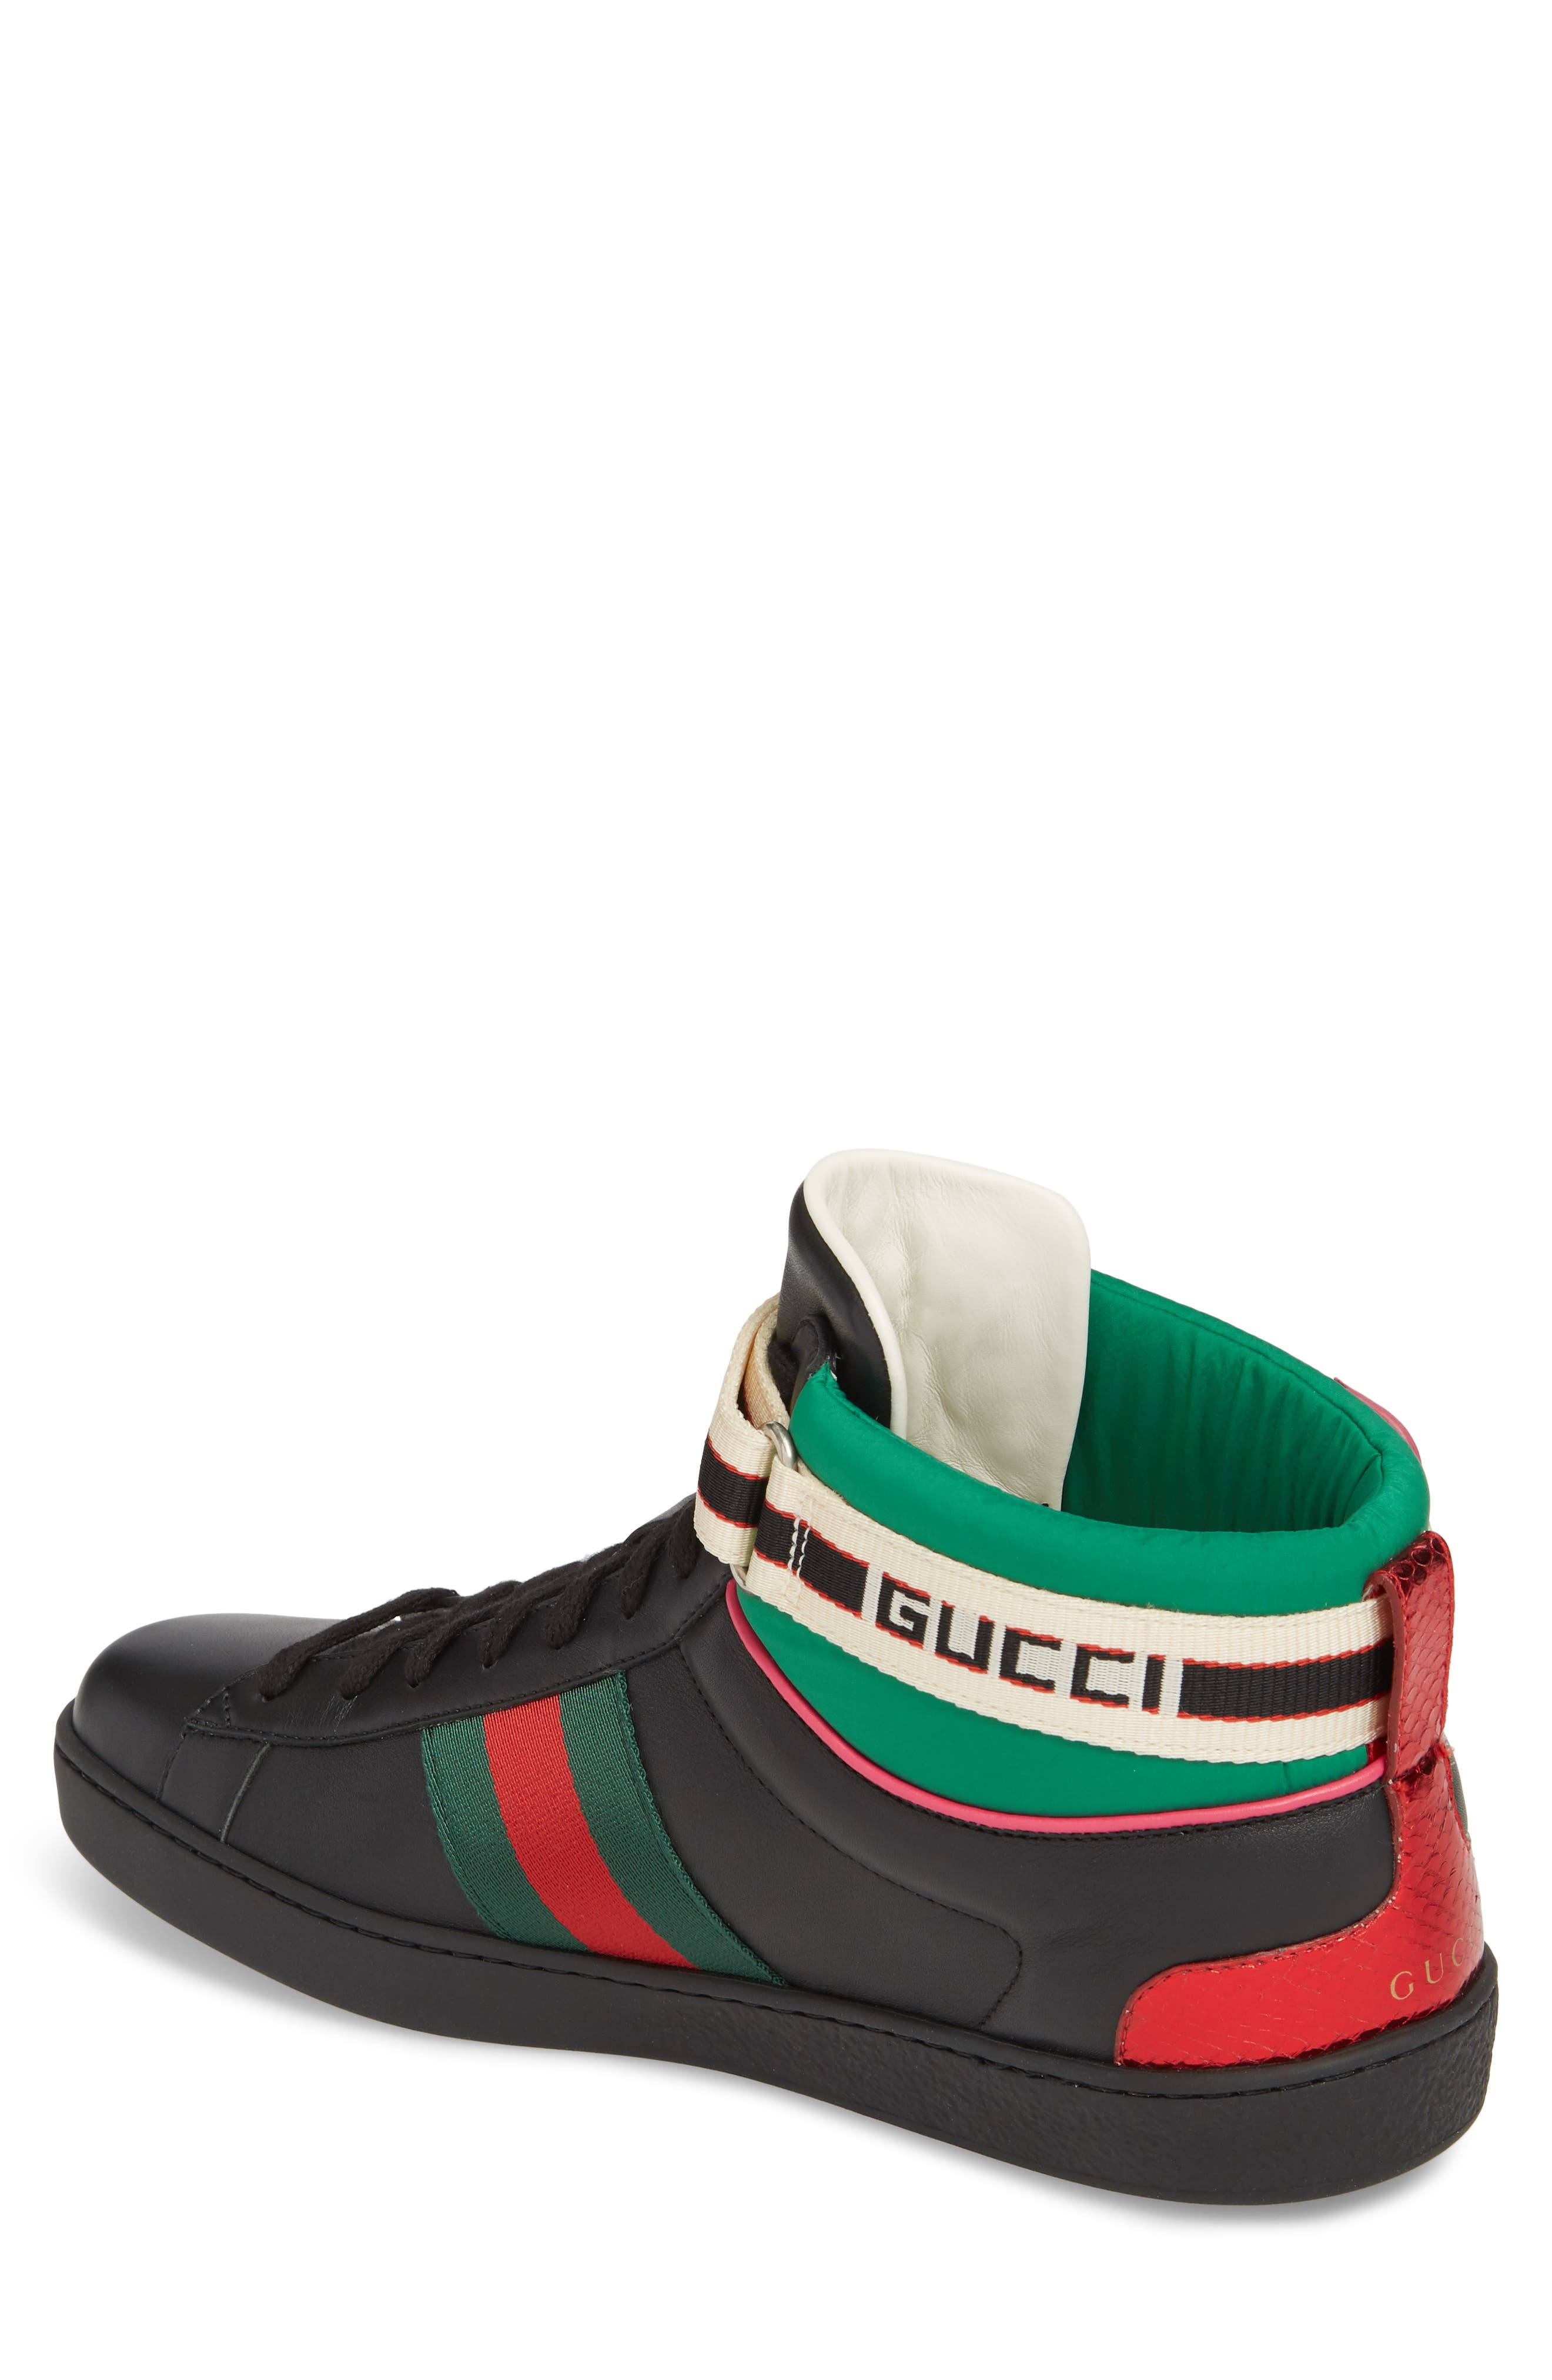 GUCCI, New Ace Stripe High Top Sneaker, Alternate thumbnail 2, color, BLACK